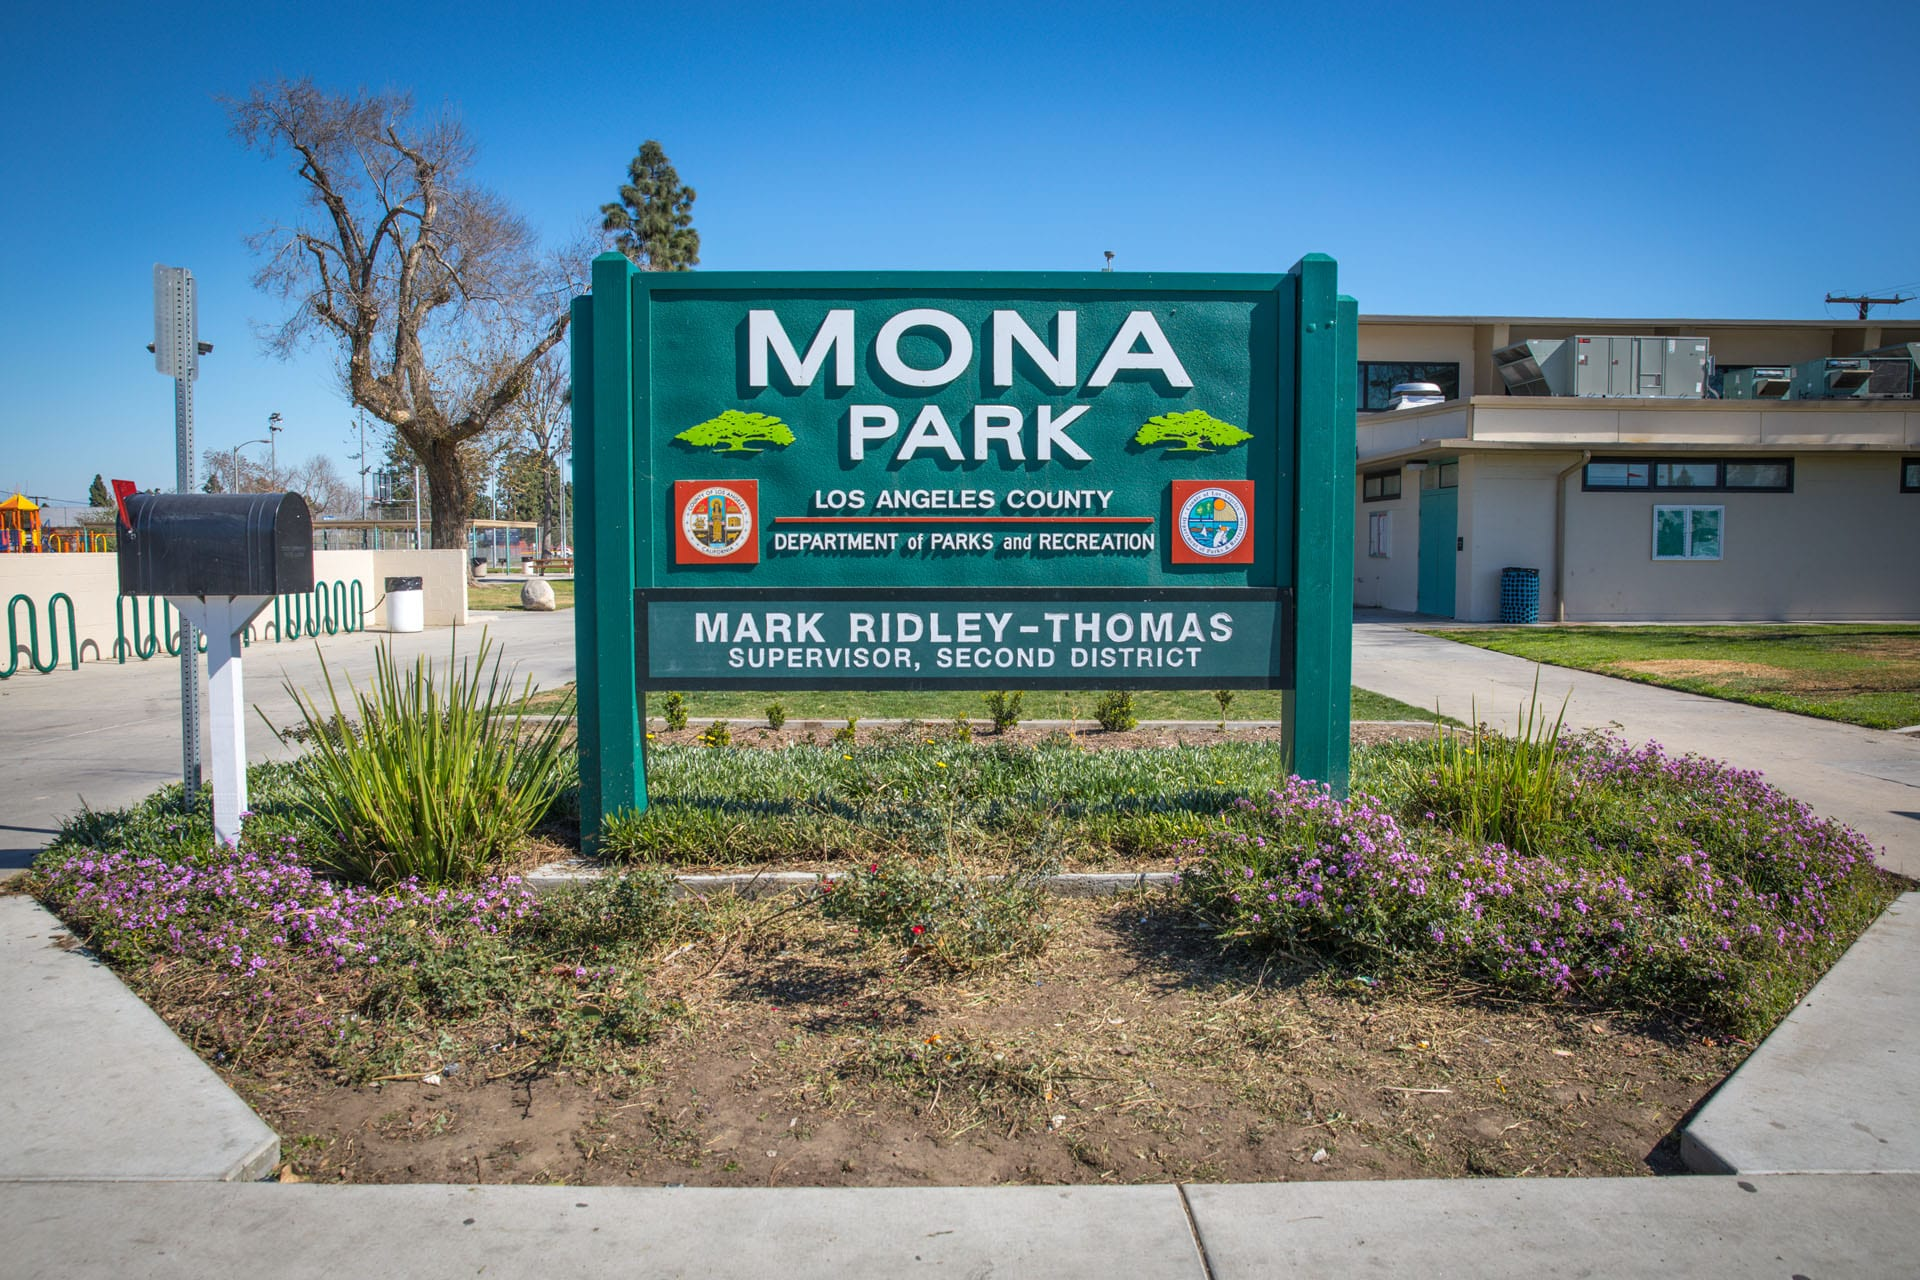 Mona Park sign in flower garden